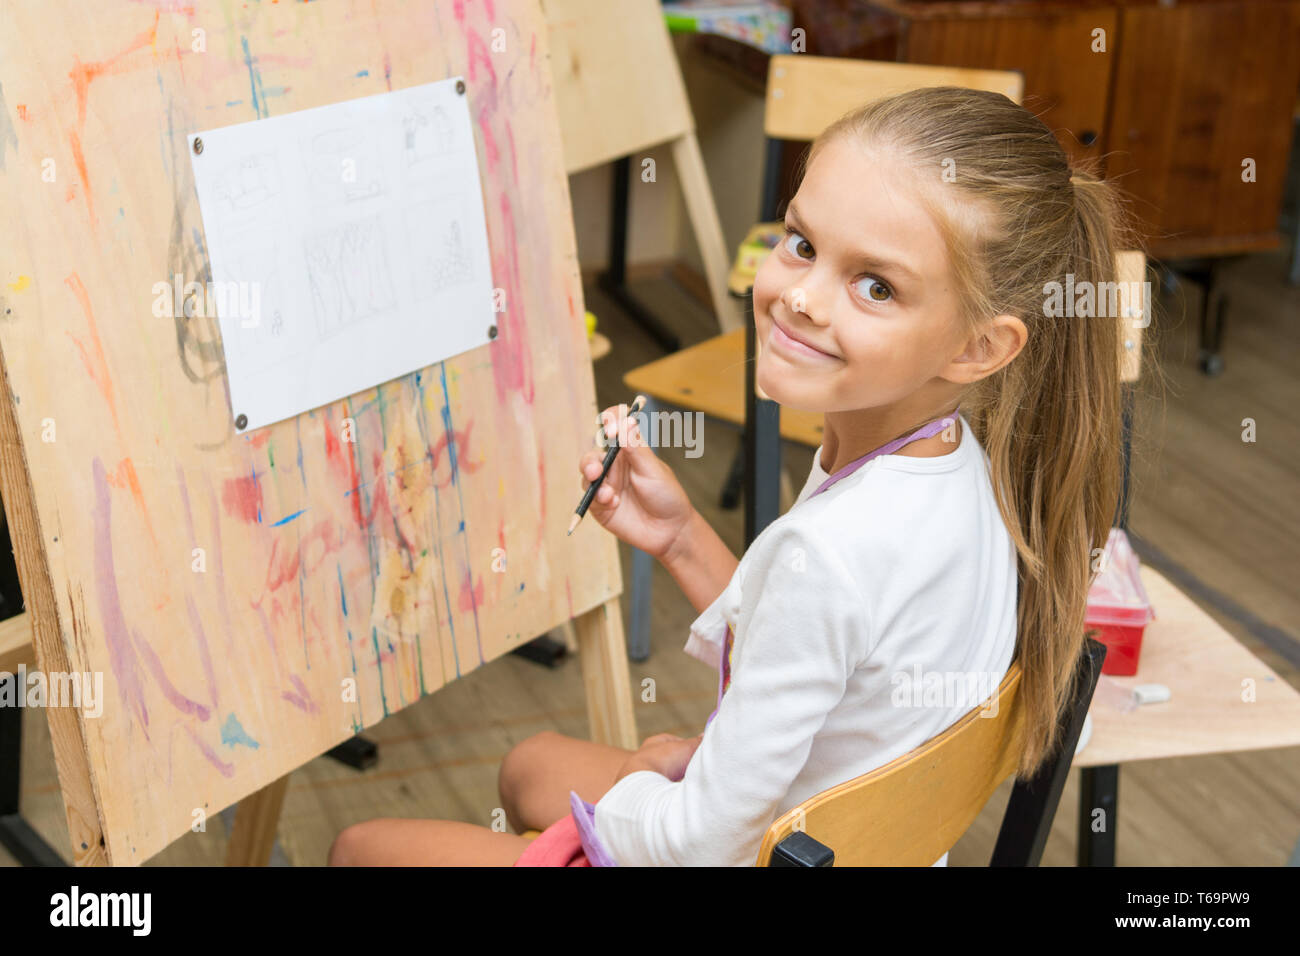 Girl happily looks into the frame on a drawing lesson - Stock Image